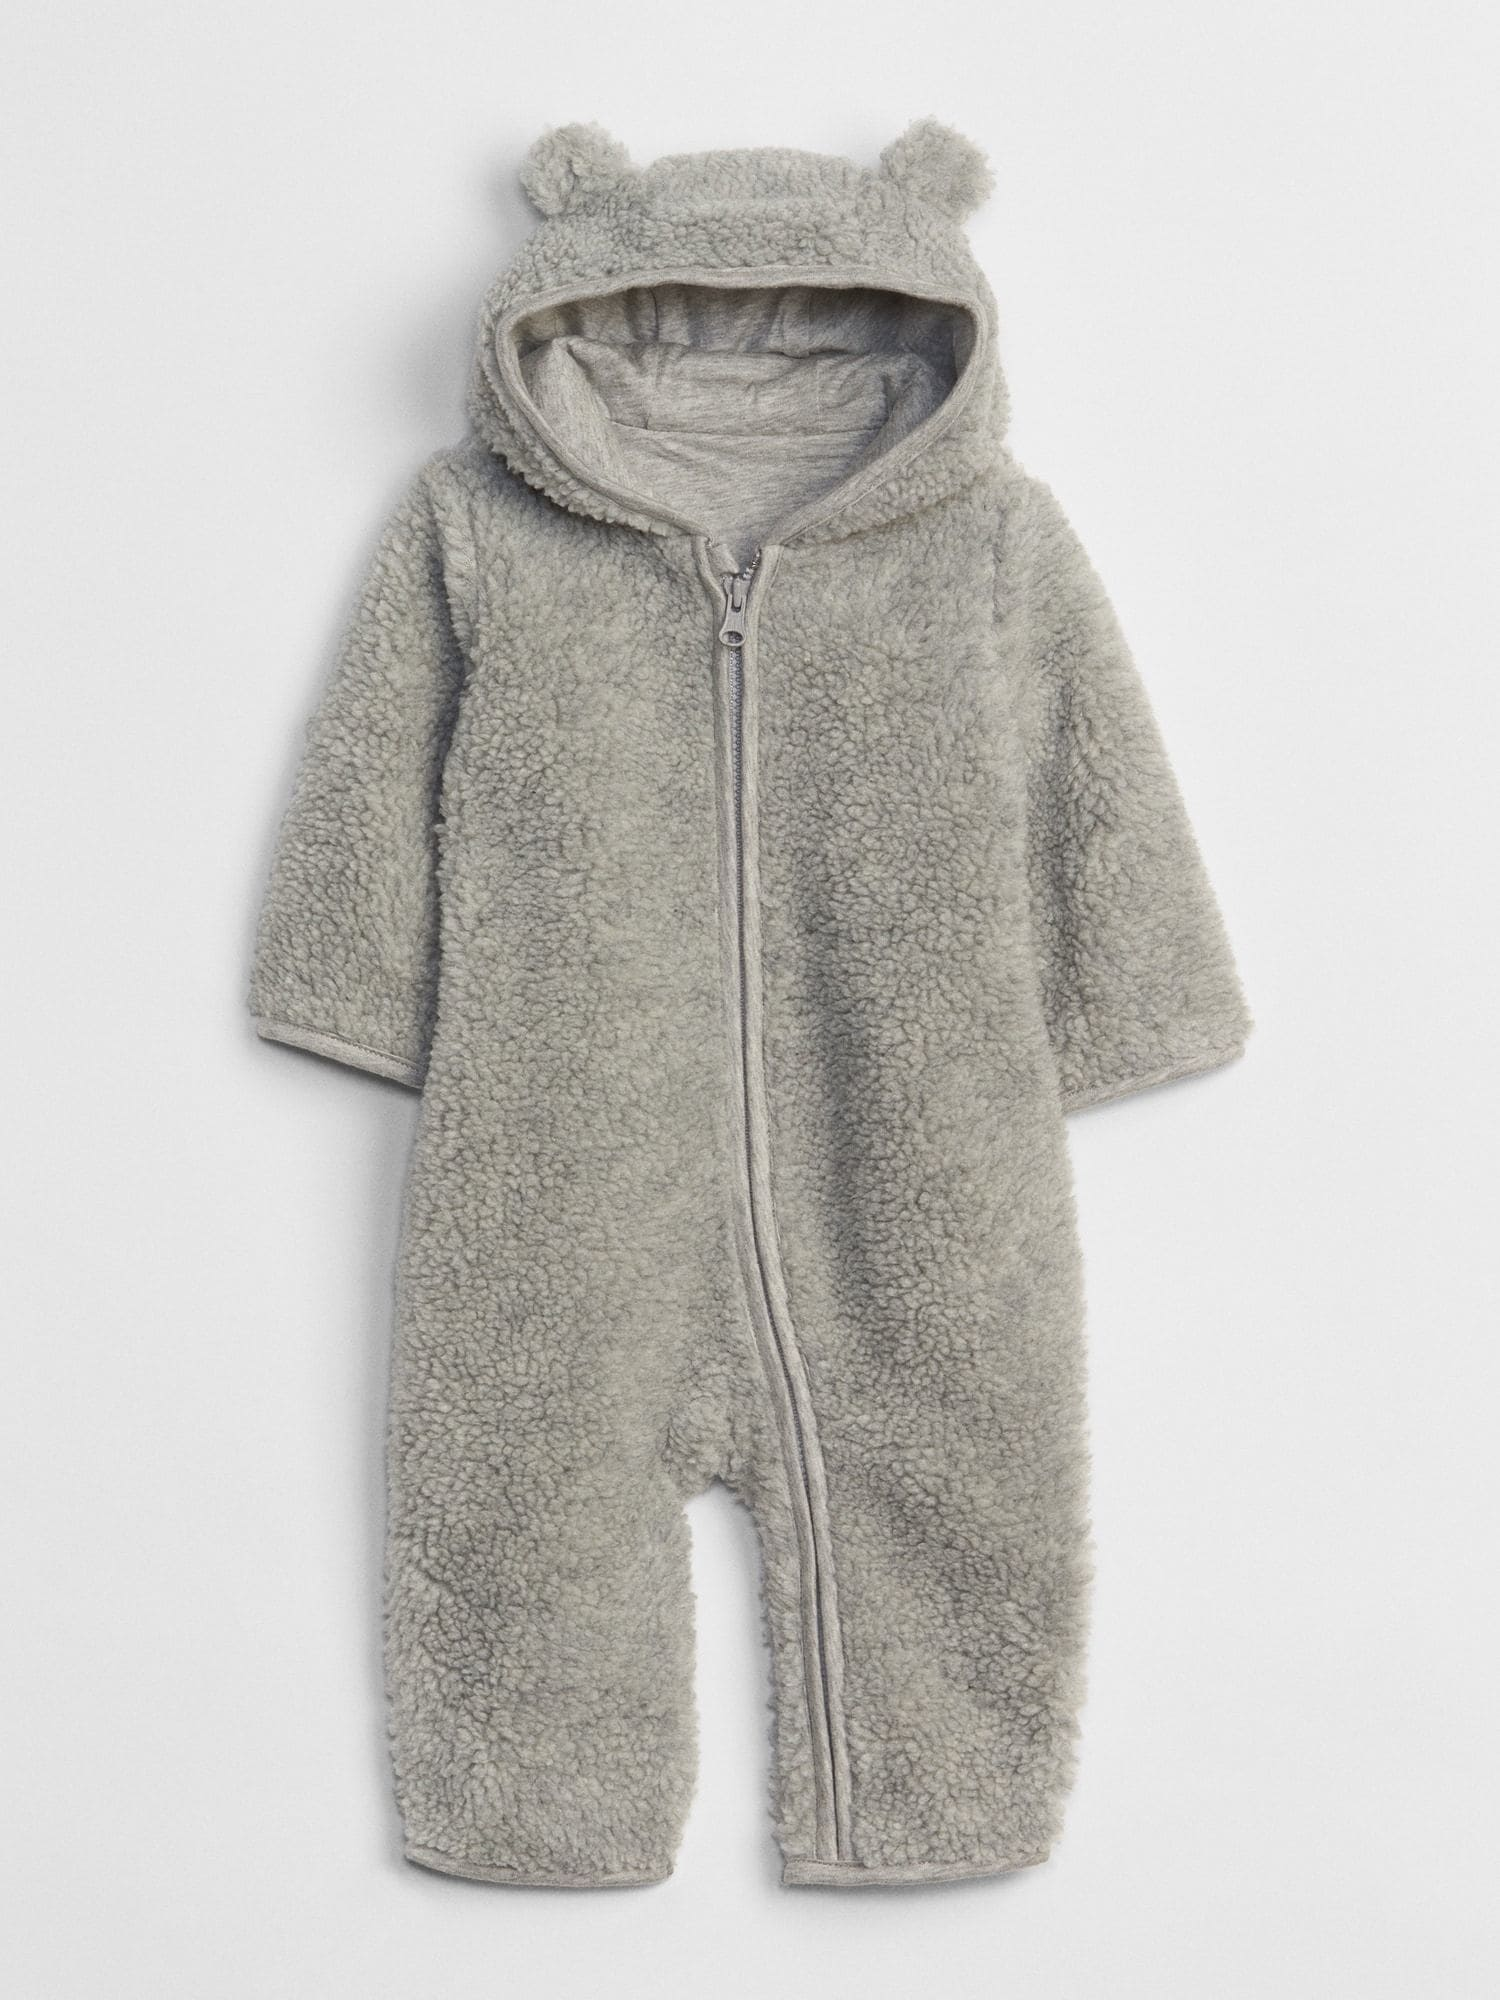 gap-fluffy-snowsuit-with-ears